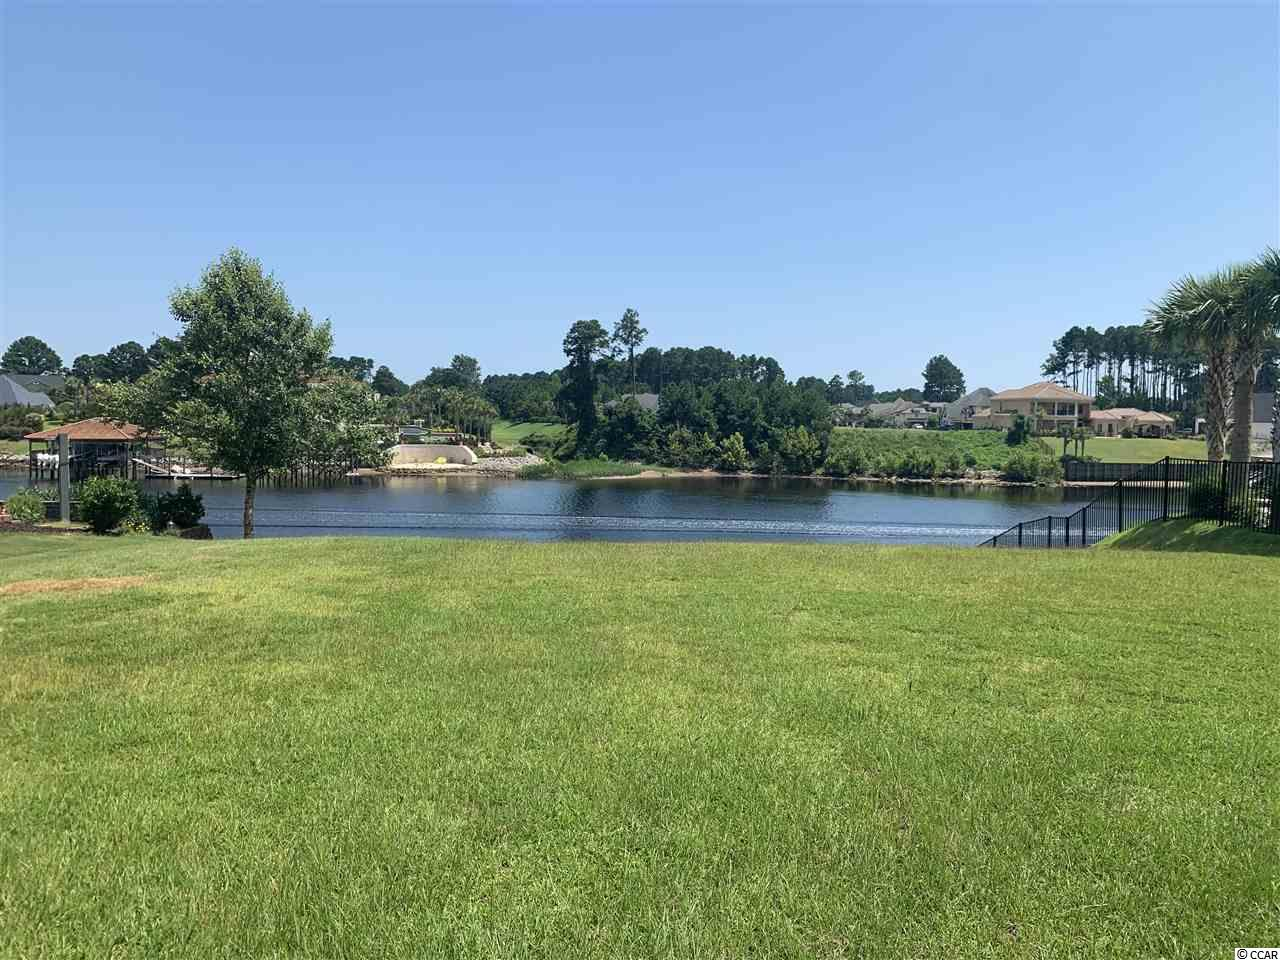 Start living your dream today.  This beautiful large waterway lot that is ready for you to build your dream house.  Bulkhead is already in place.  Highly desired gated Carolina Waterway Plantation offers furnished clubhouse with kitchen and banquet room, outside grill, pool, kids playground, gazebo, tennis court, walking trails, boat ramp, storage for RV and boats . Carolina Forest area offers award-winning schools, grocery stores, medical facilities, recreational centers, library ,religious centers, bike park. Buy now and start experiencing relaxing natures beauty with extraordinary sunrises ,sunsets and water views in Carolina Waterway Plantation.